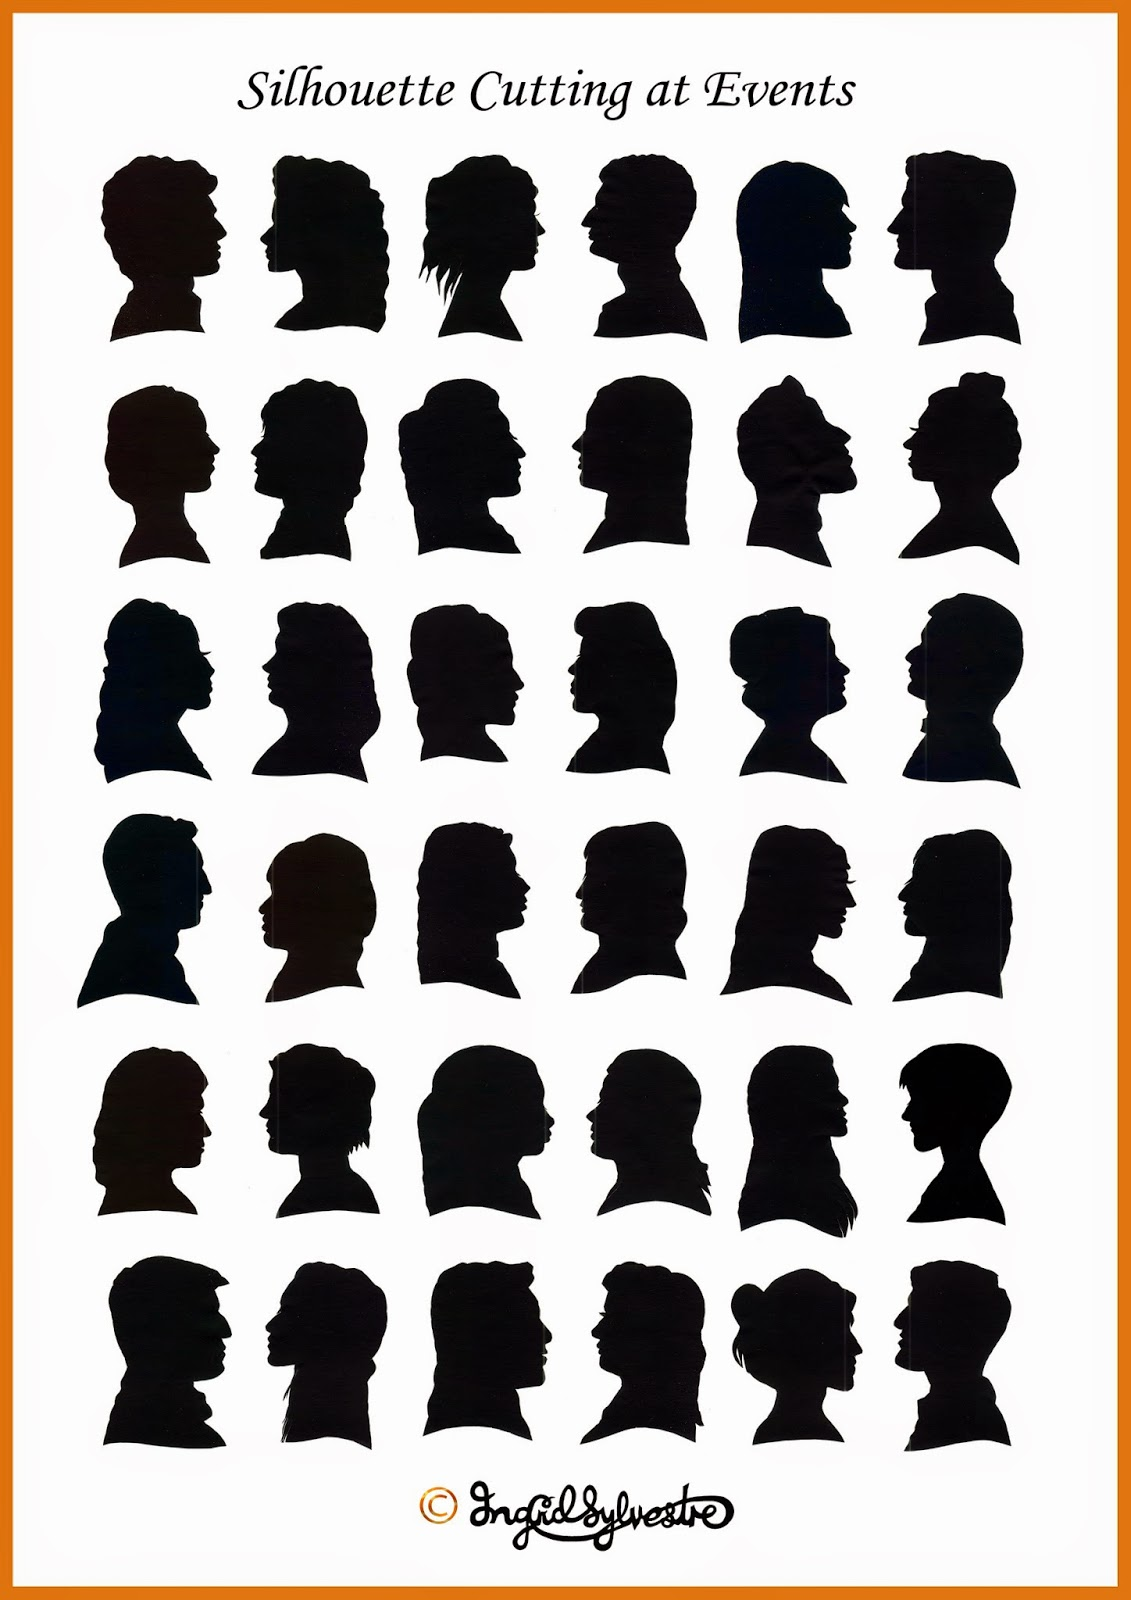 Silhouettes cut by UK silhouette artist - shadow cutter Ingrid Sylvestre, weddings, parties, proms, corporate events